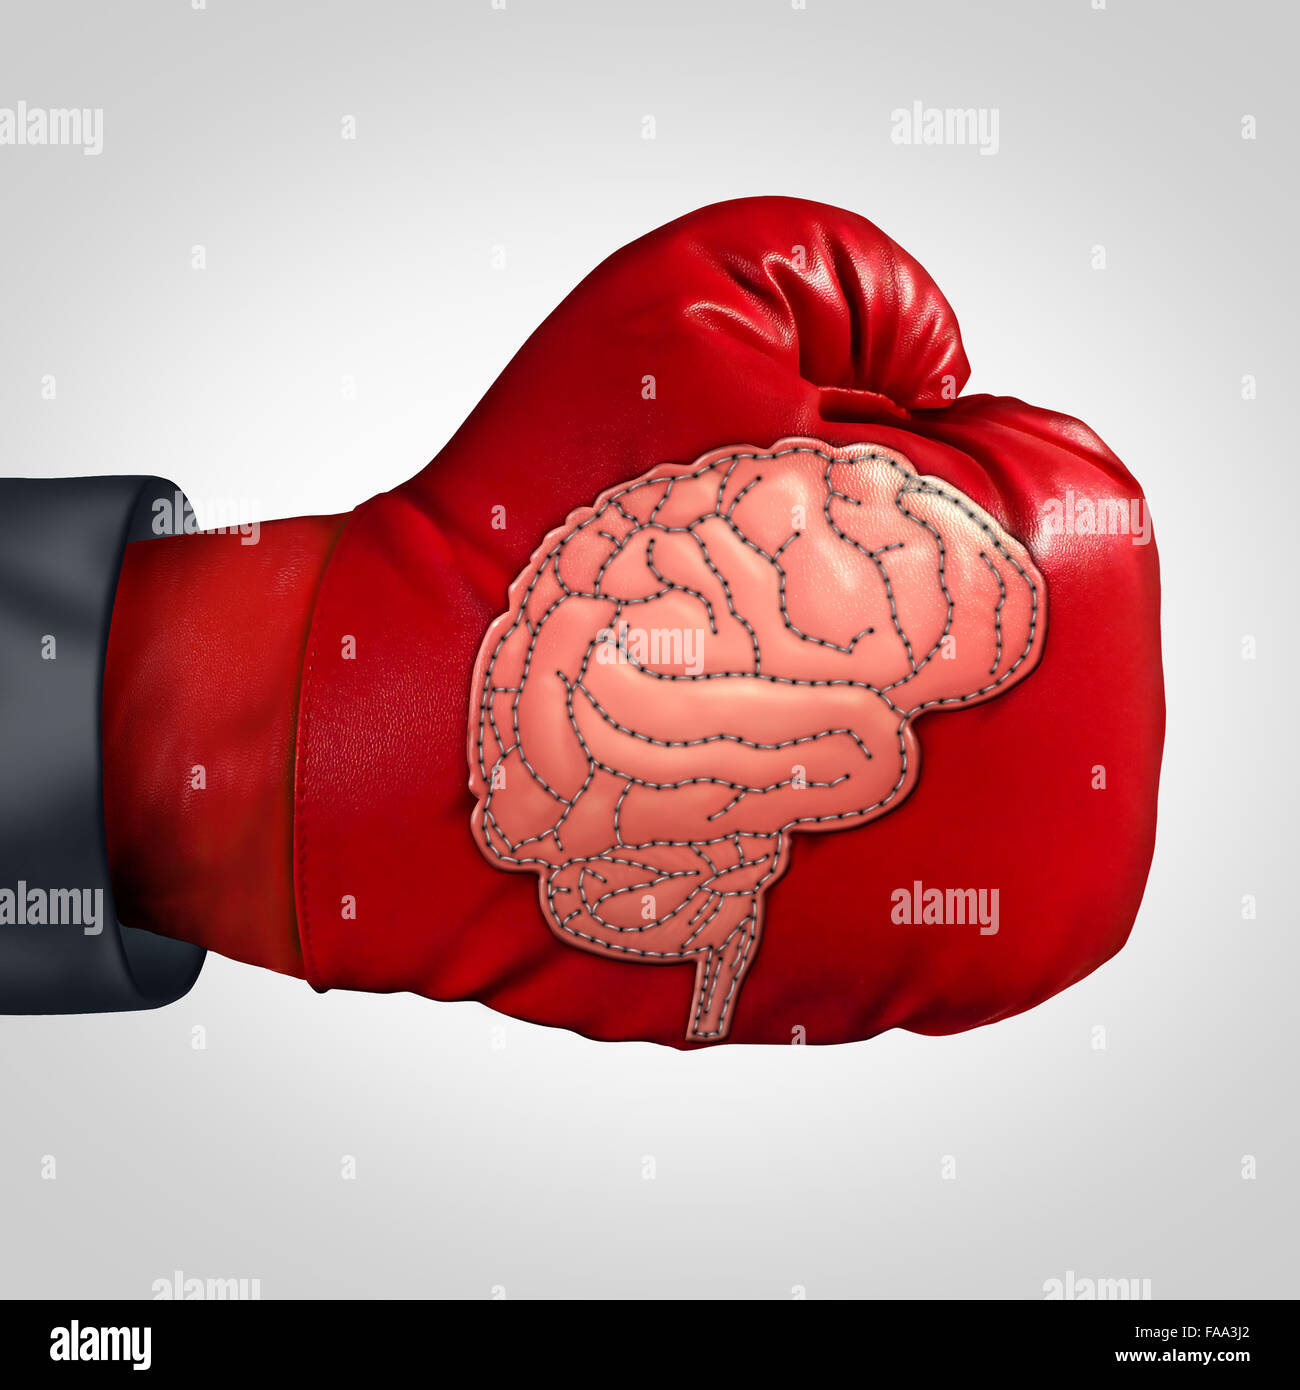 Strong brain activity and training the mind to perform in intelligence and memory as a boxing glove with a patch - Stock Image